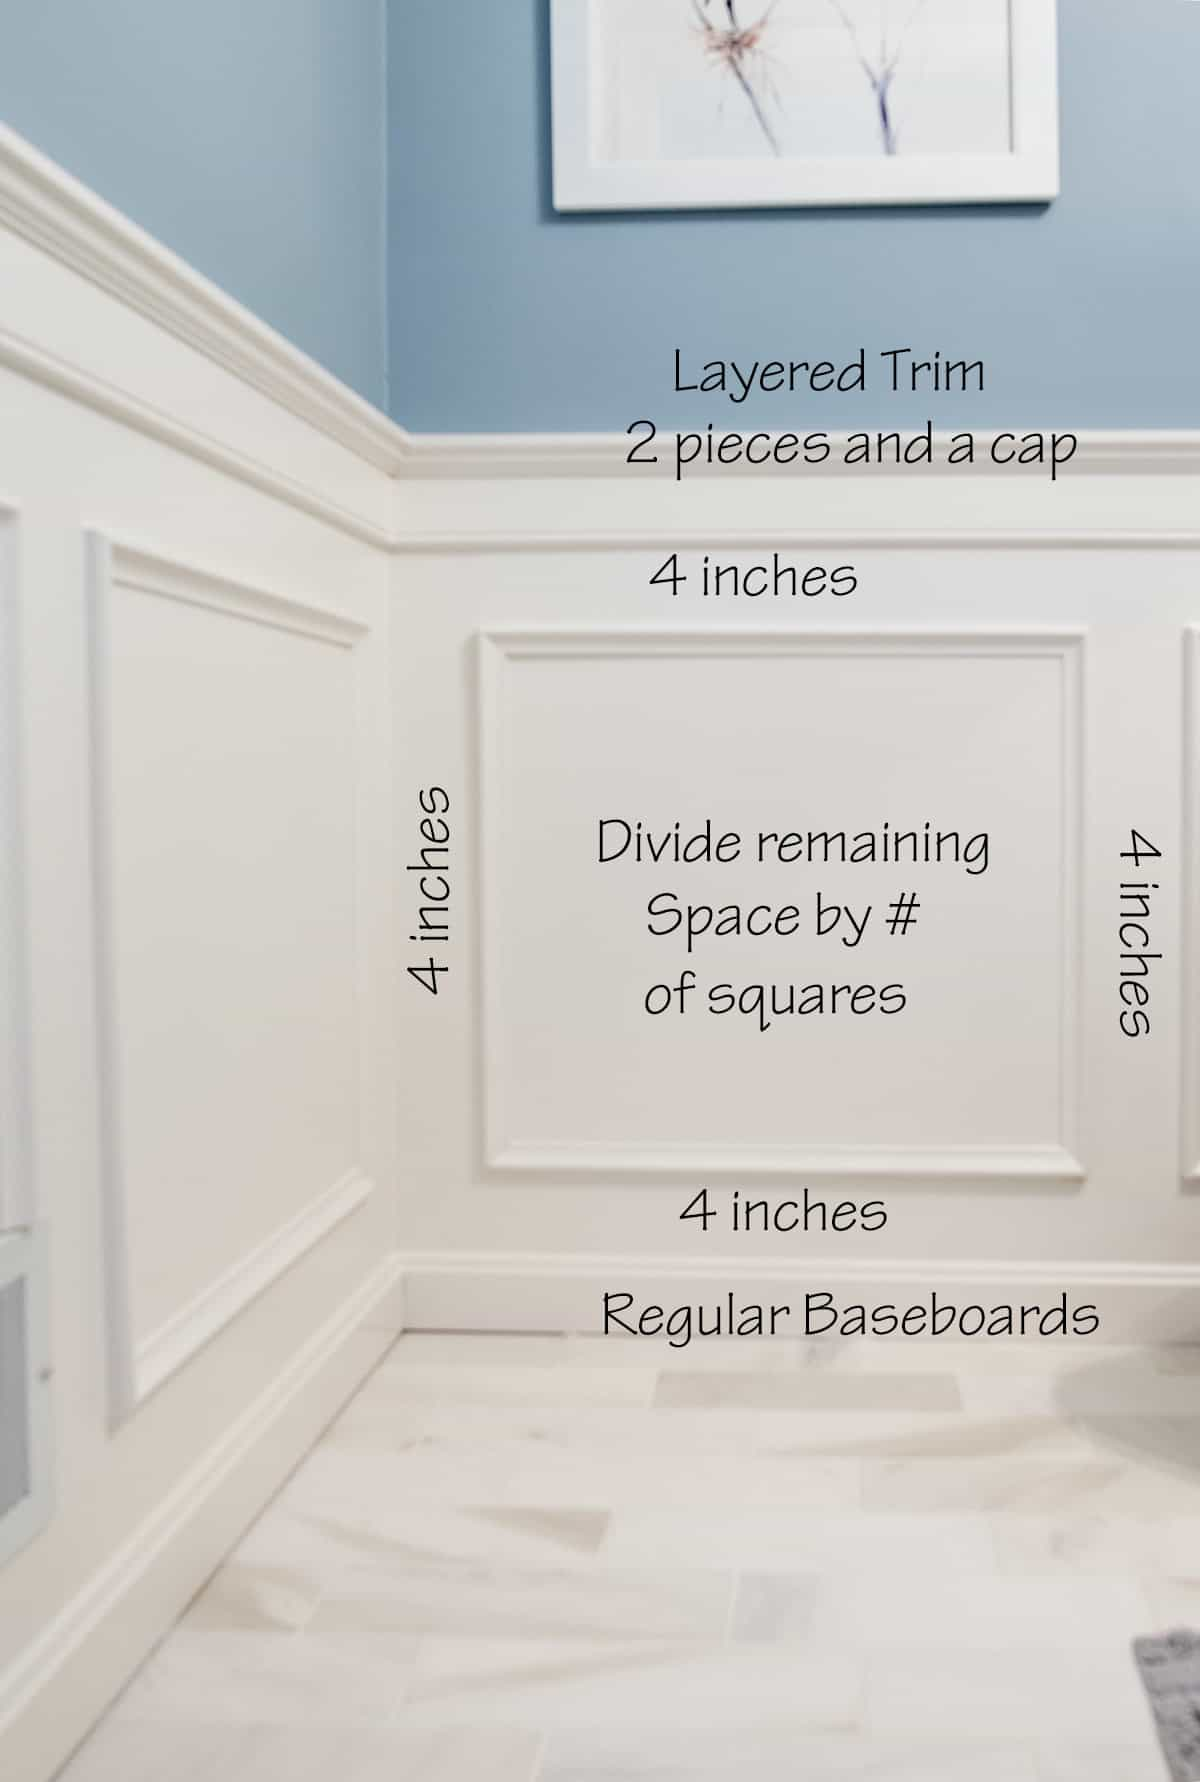 Wainscoting ideas for designing and installing a classic style wainscoting. This example utilizes the bathroom.